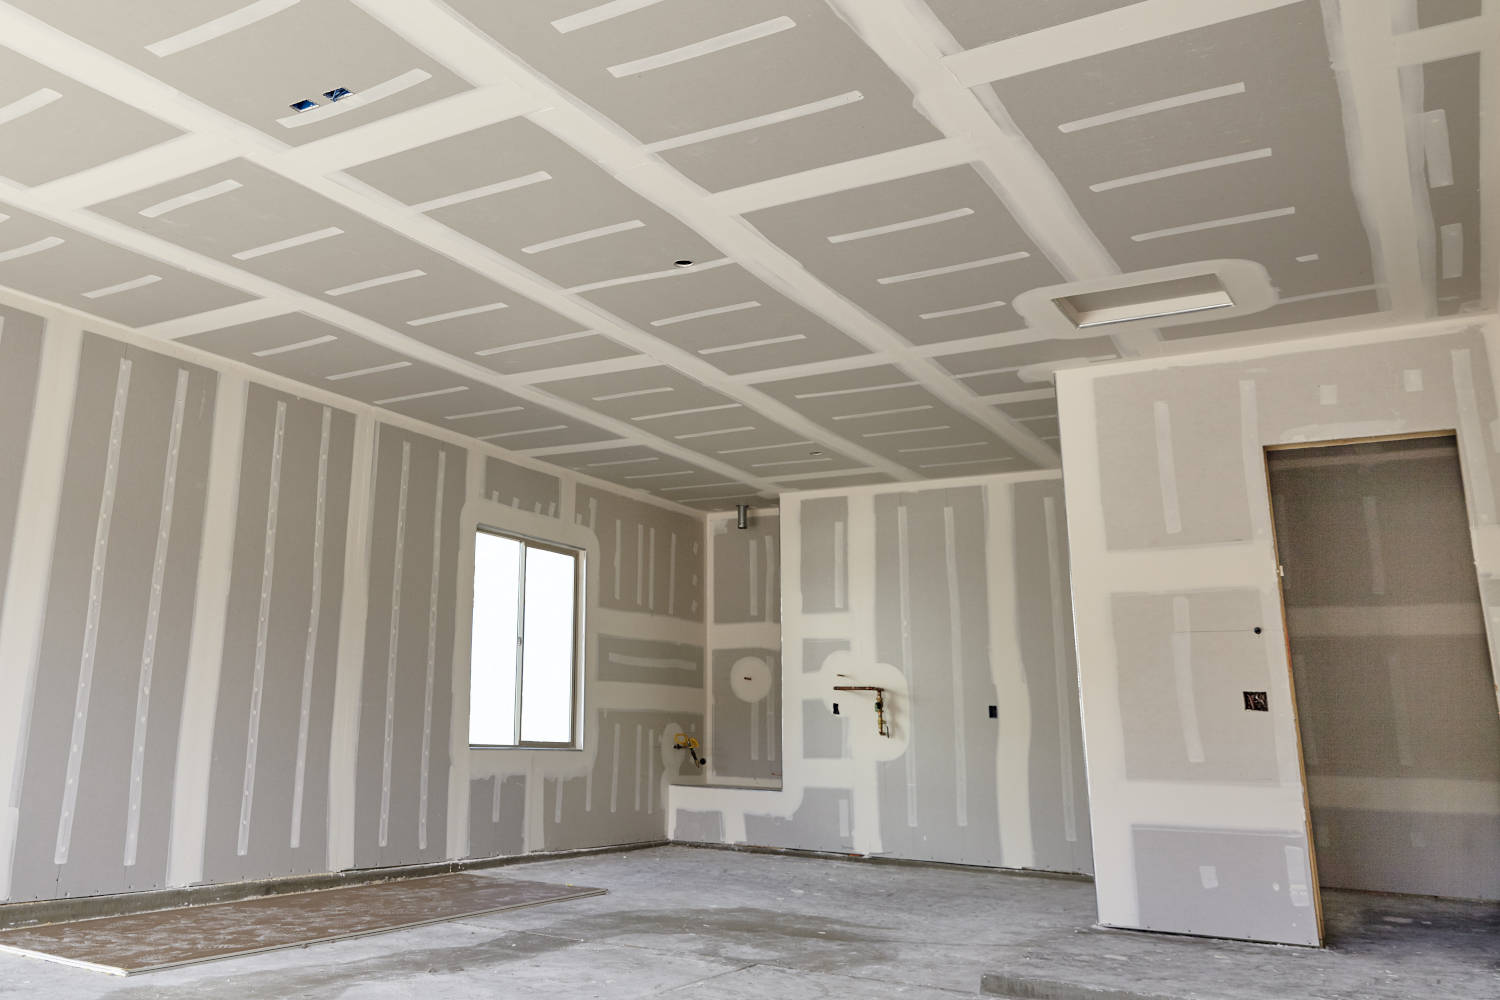 Estimating how much drywall is needed